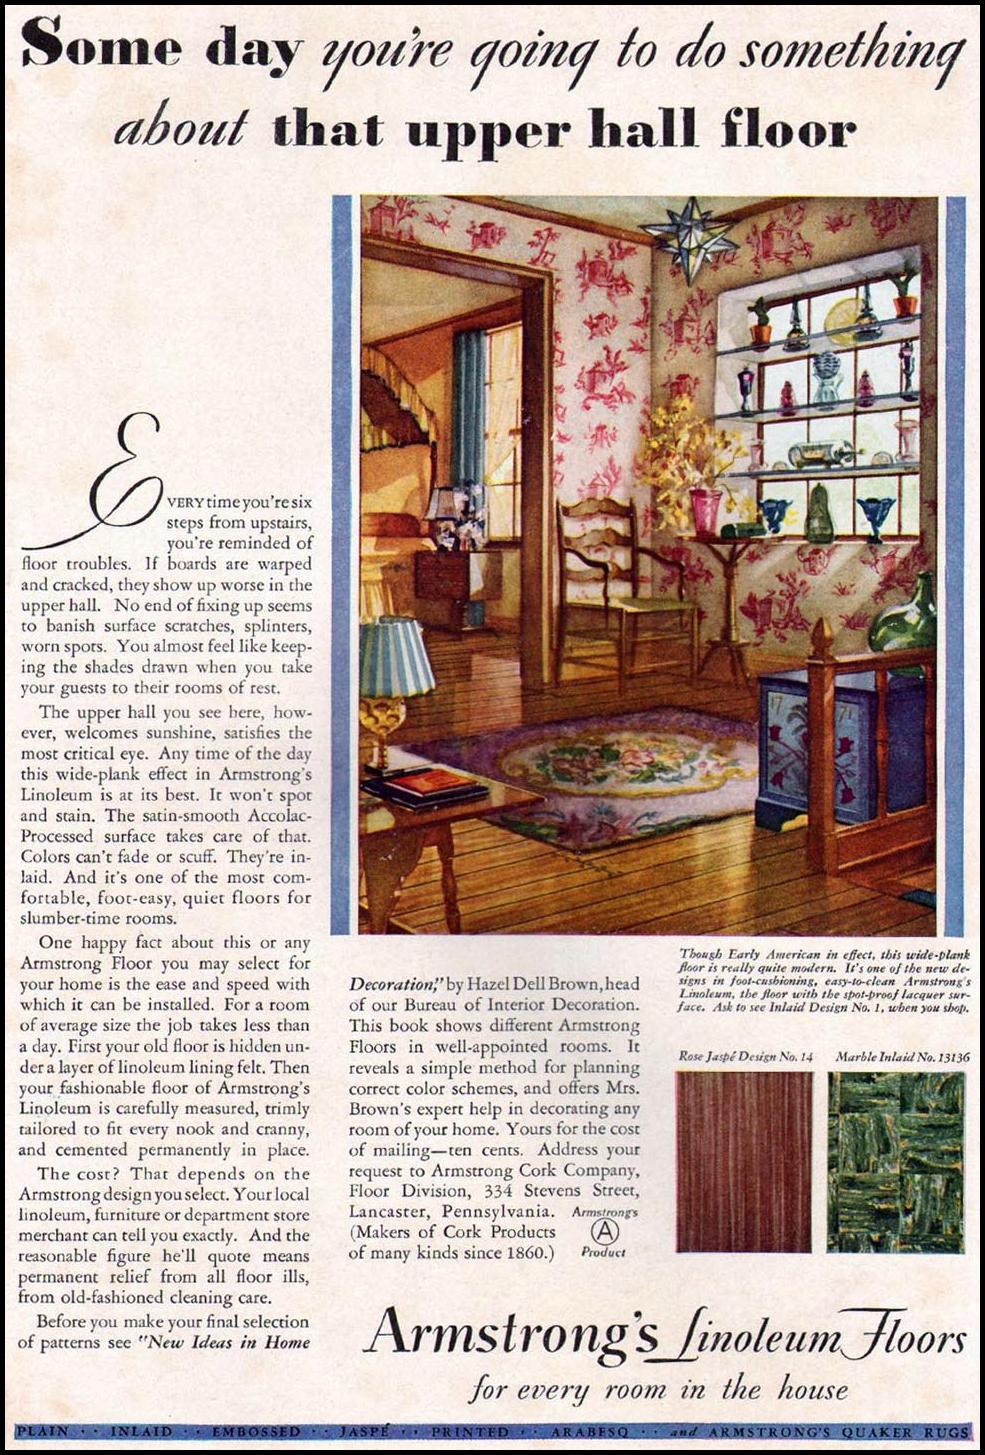 ARMSTRONG LINOLEUM FLOORS BETTER HOMES AND GARDENS 03/01/1932